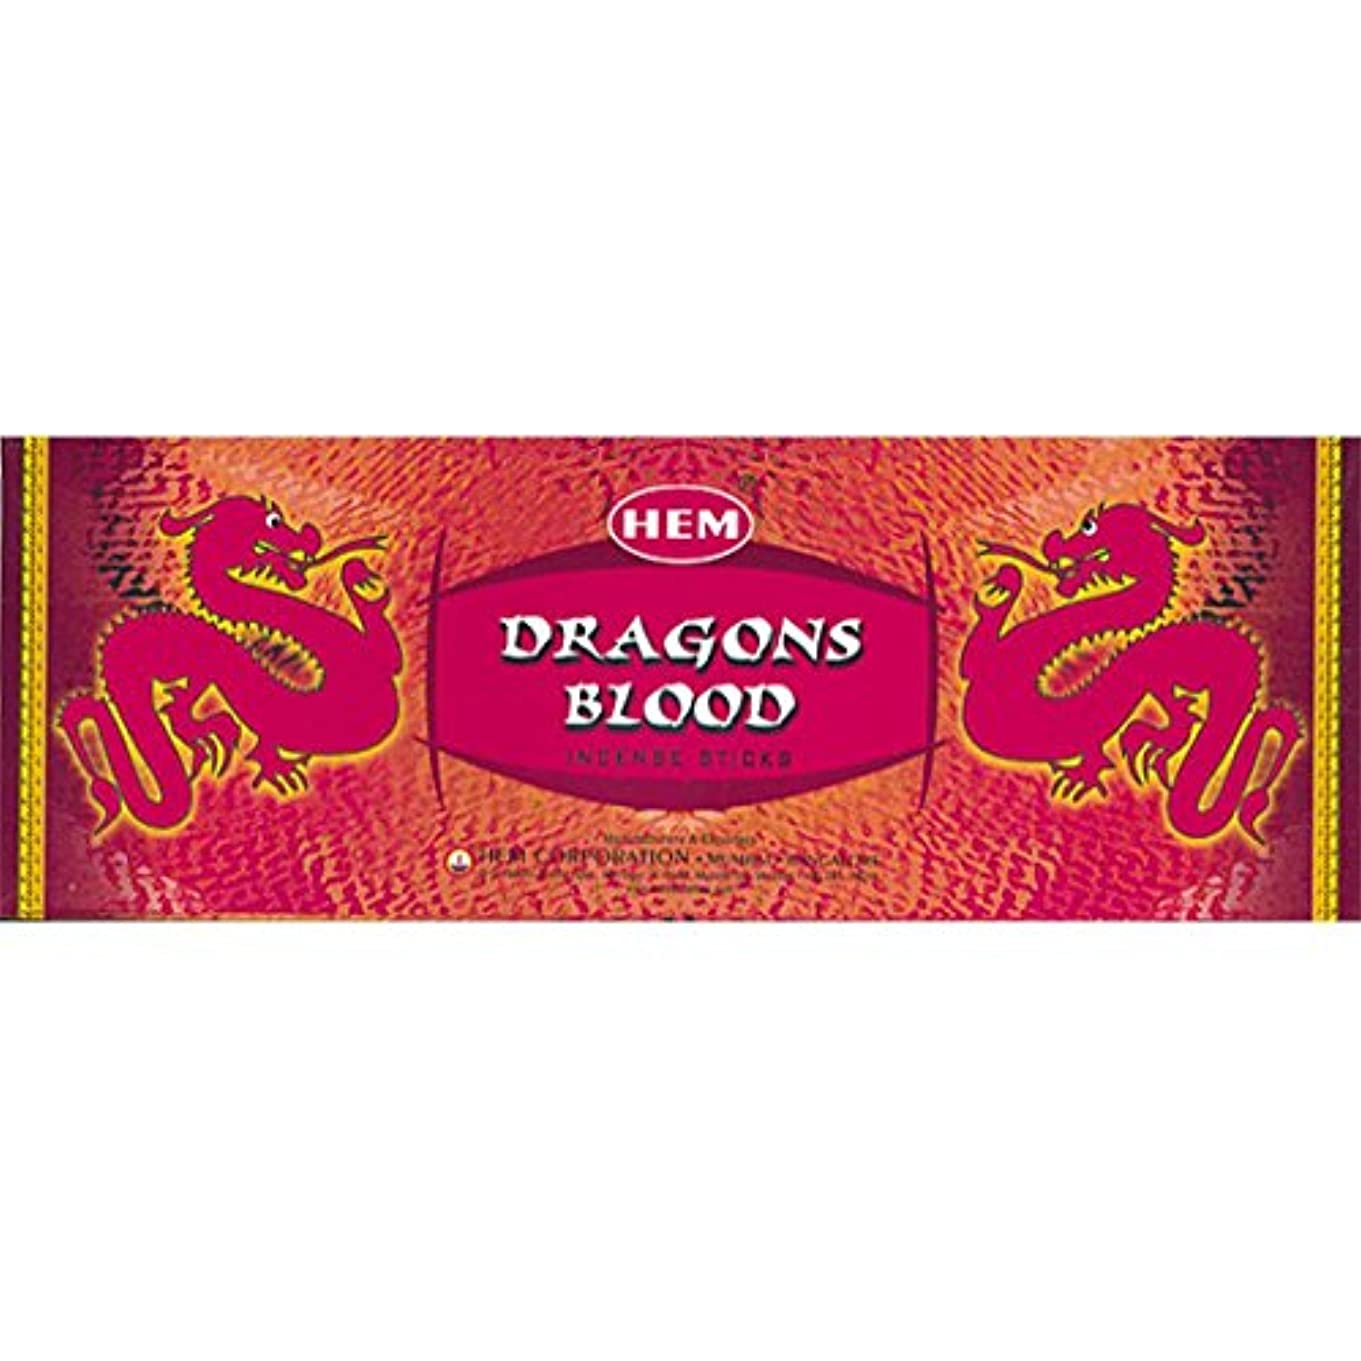 コンペコンテンツ悔い改めるHem Dragon's Blood Incense (Box of 6 20gram tubes) by Hem